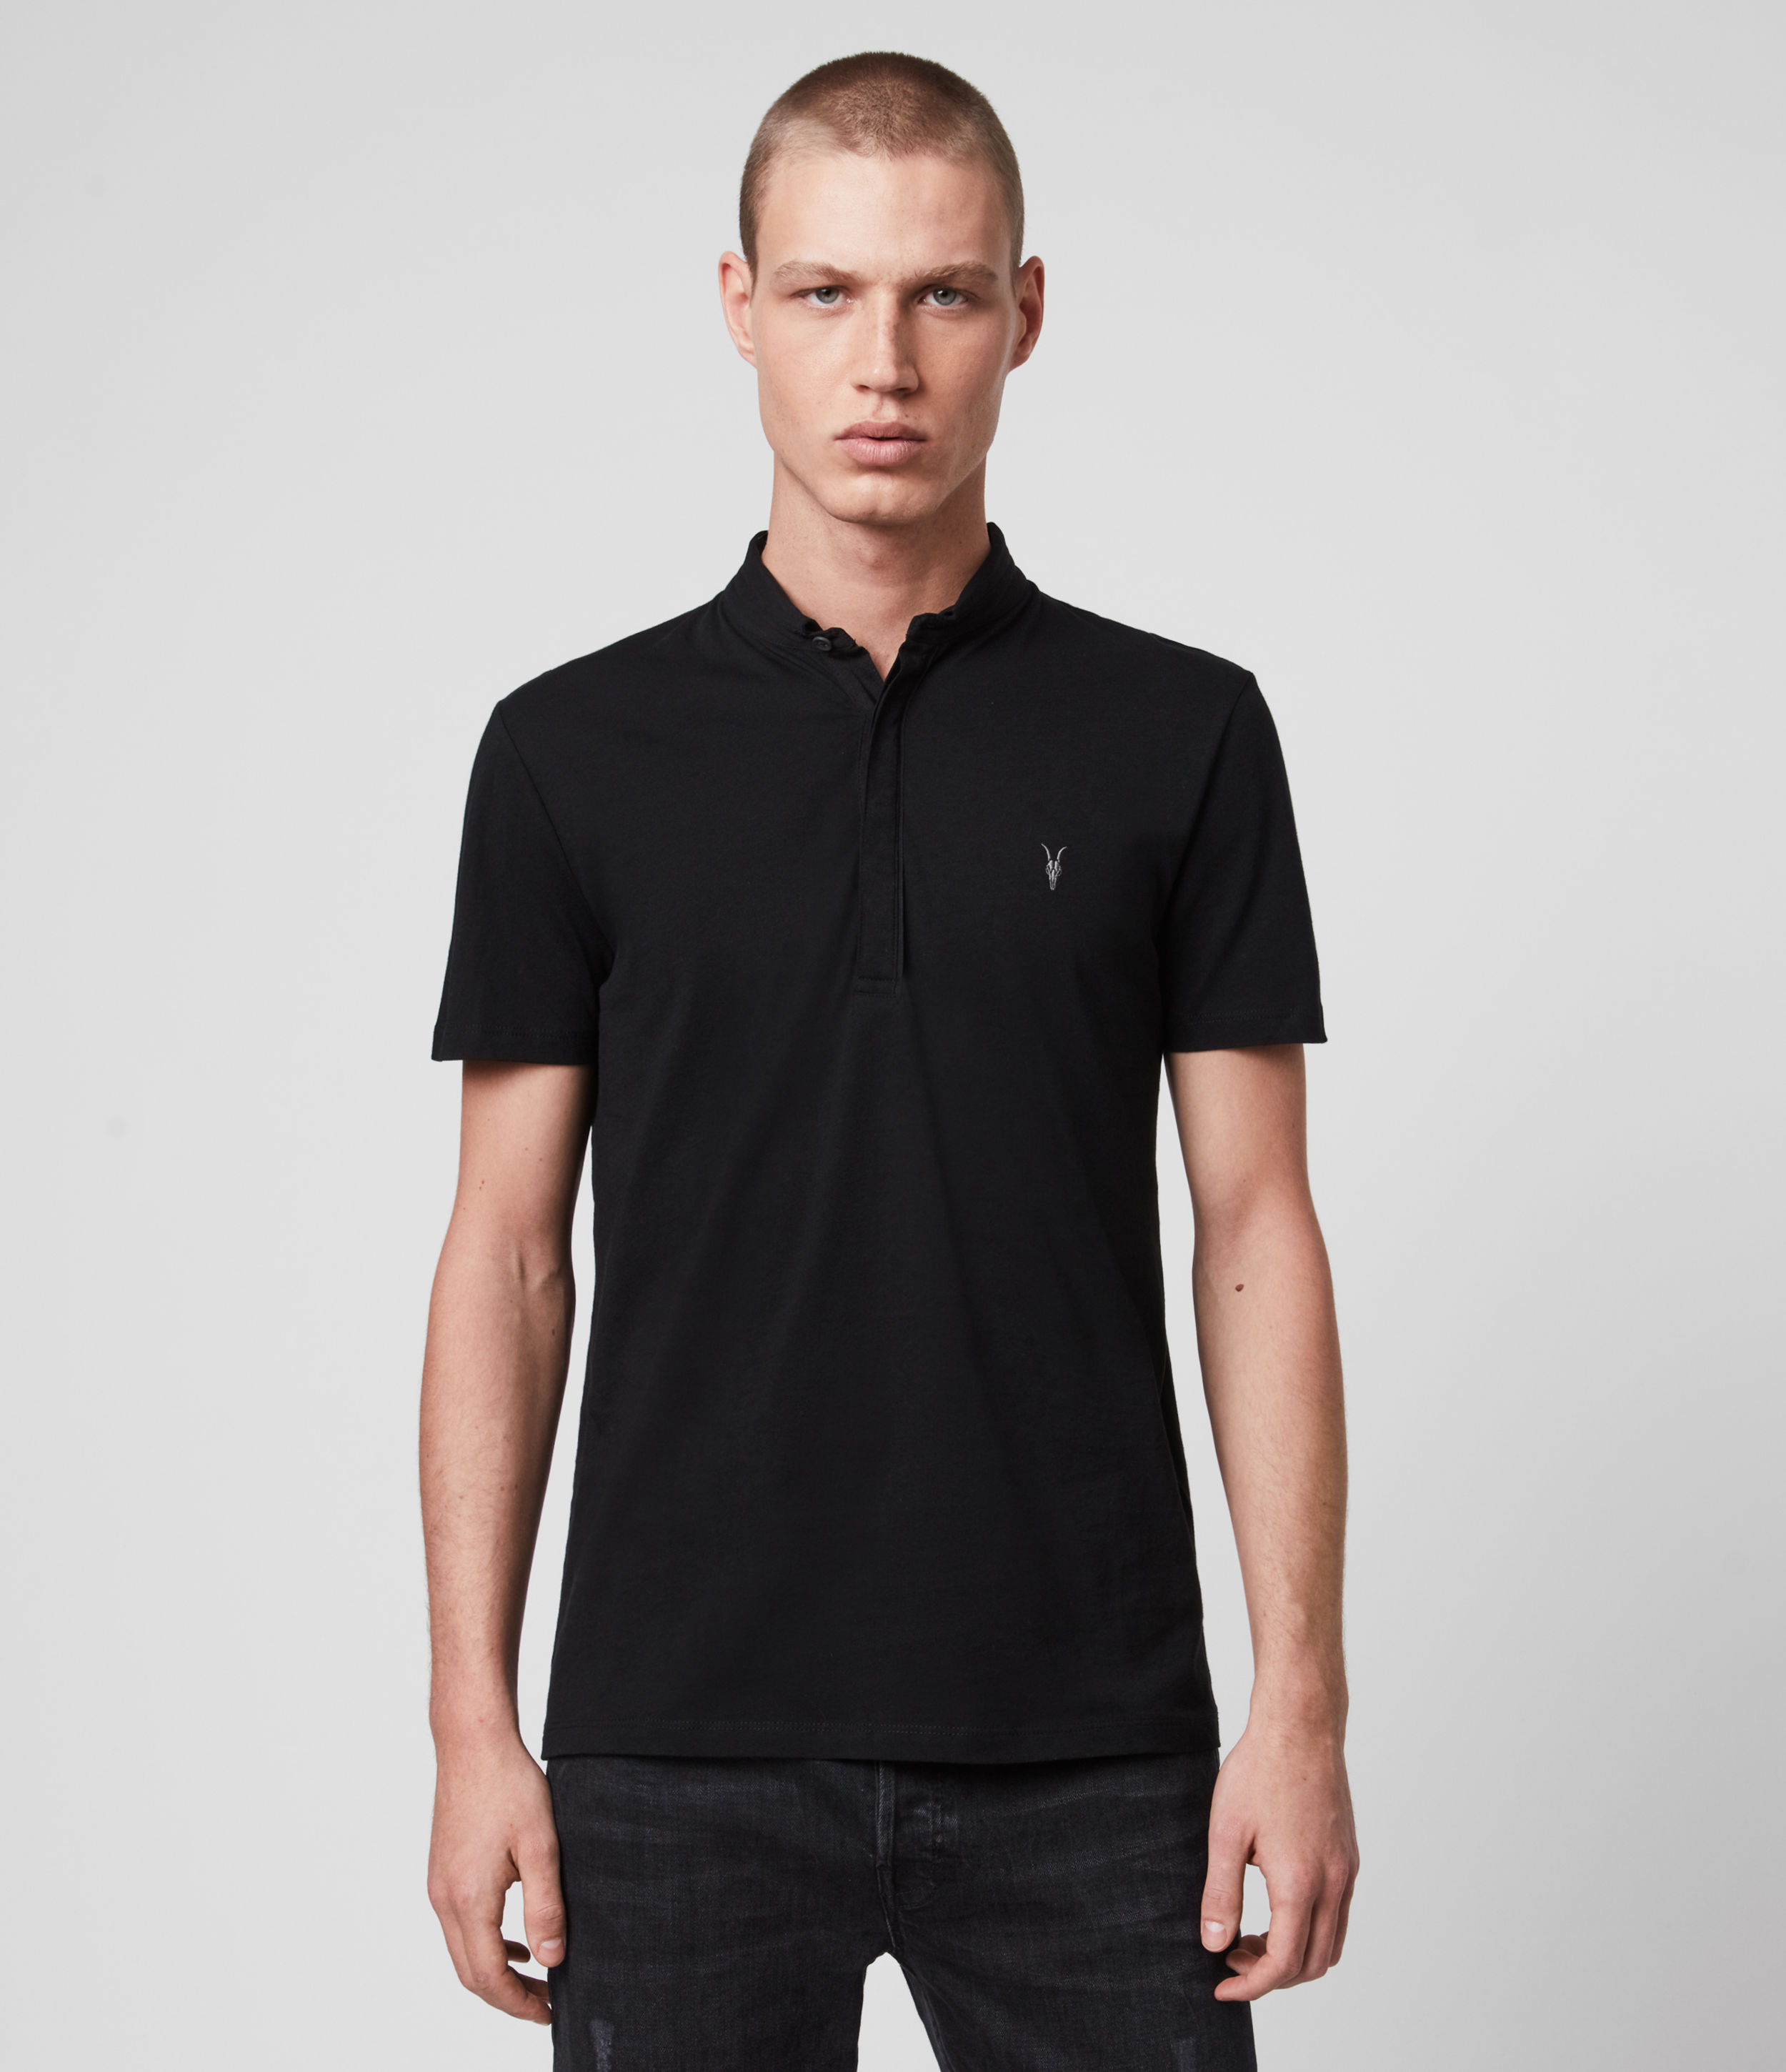 AllSaints Men's Cotton Lightweight Grail Short Sleeve Polo Shirt, Black, Size: XS